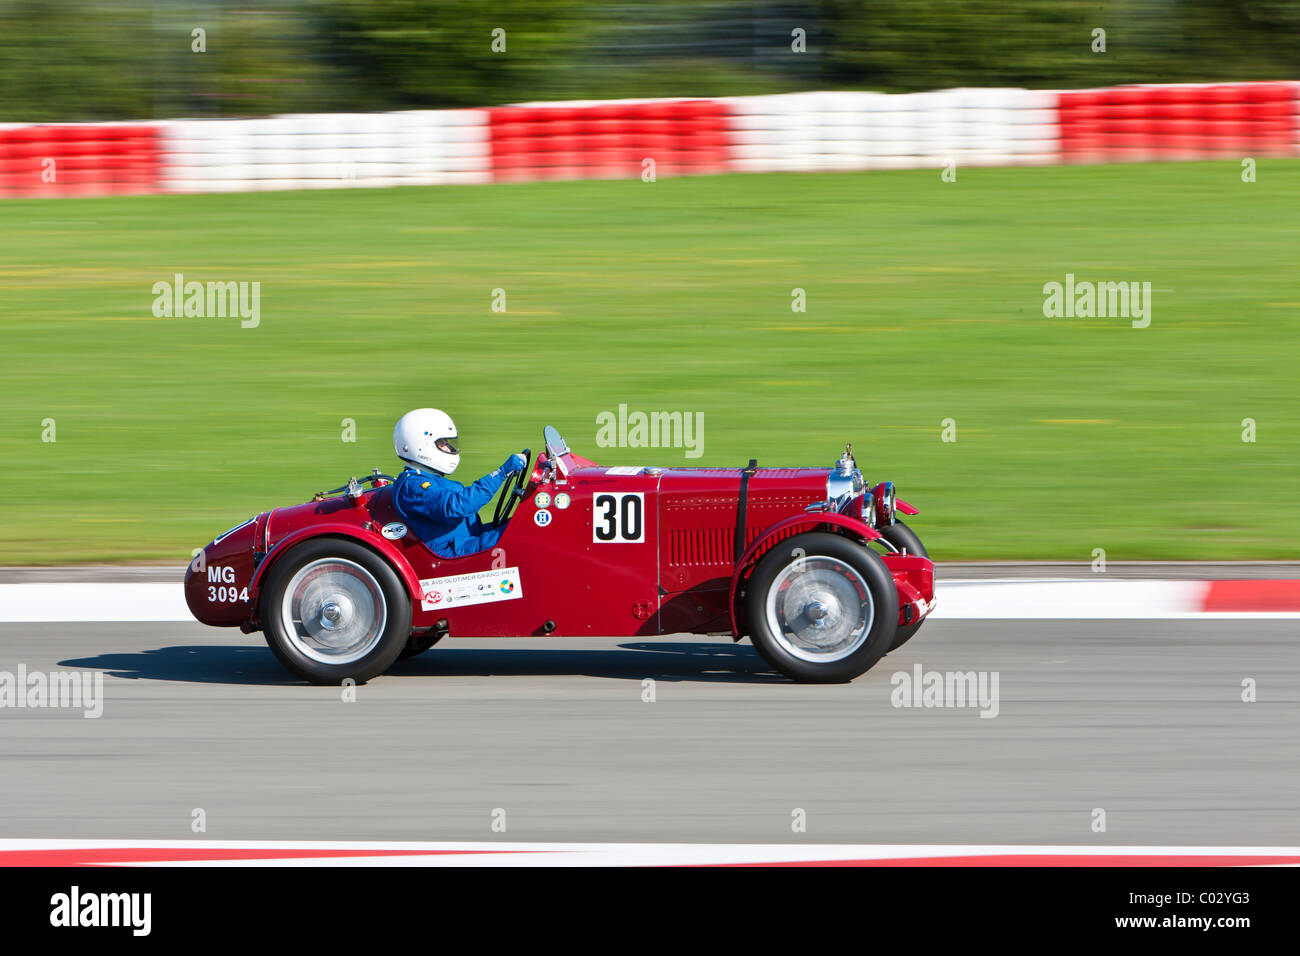 Race of pre-war racing cars at the Oldtimer Grand Prix 2010 on the Nurburgring race track, Rhineland-Palatinate, - Stock Image